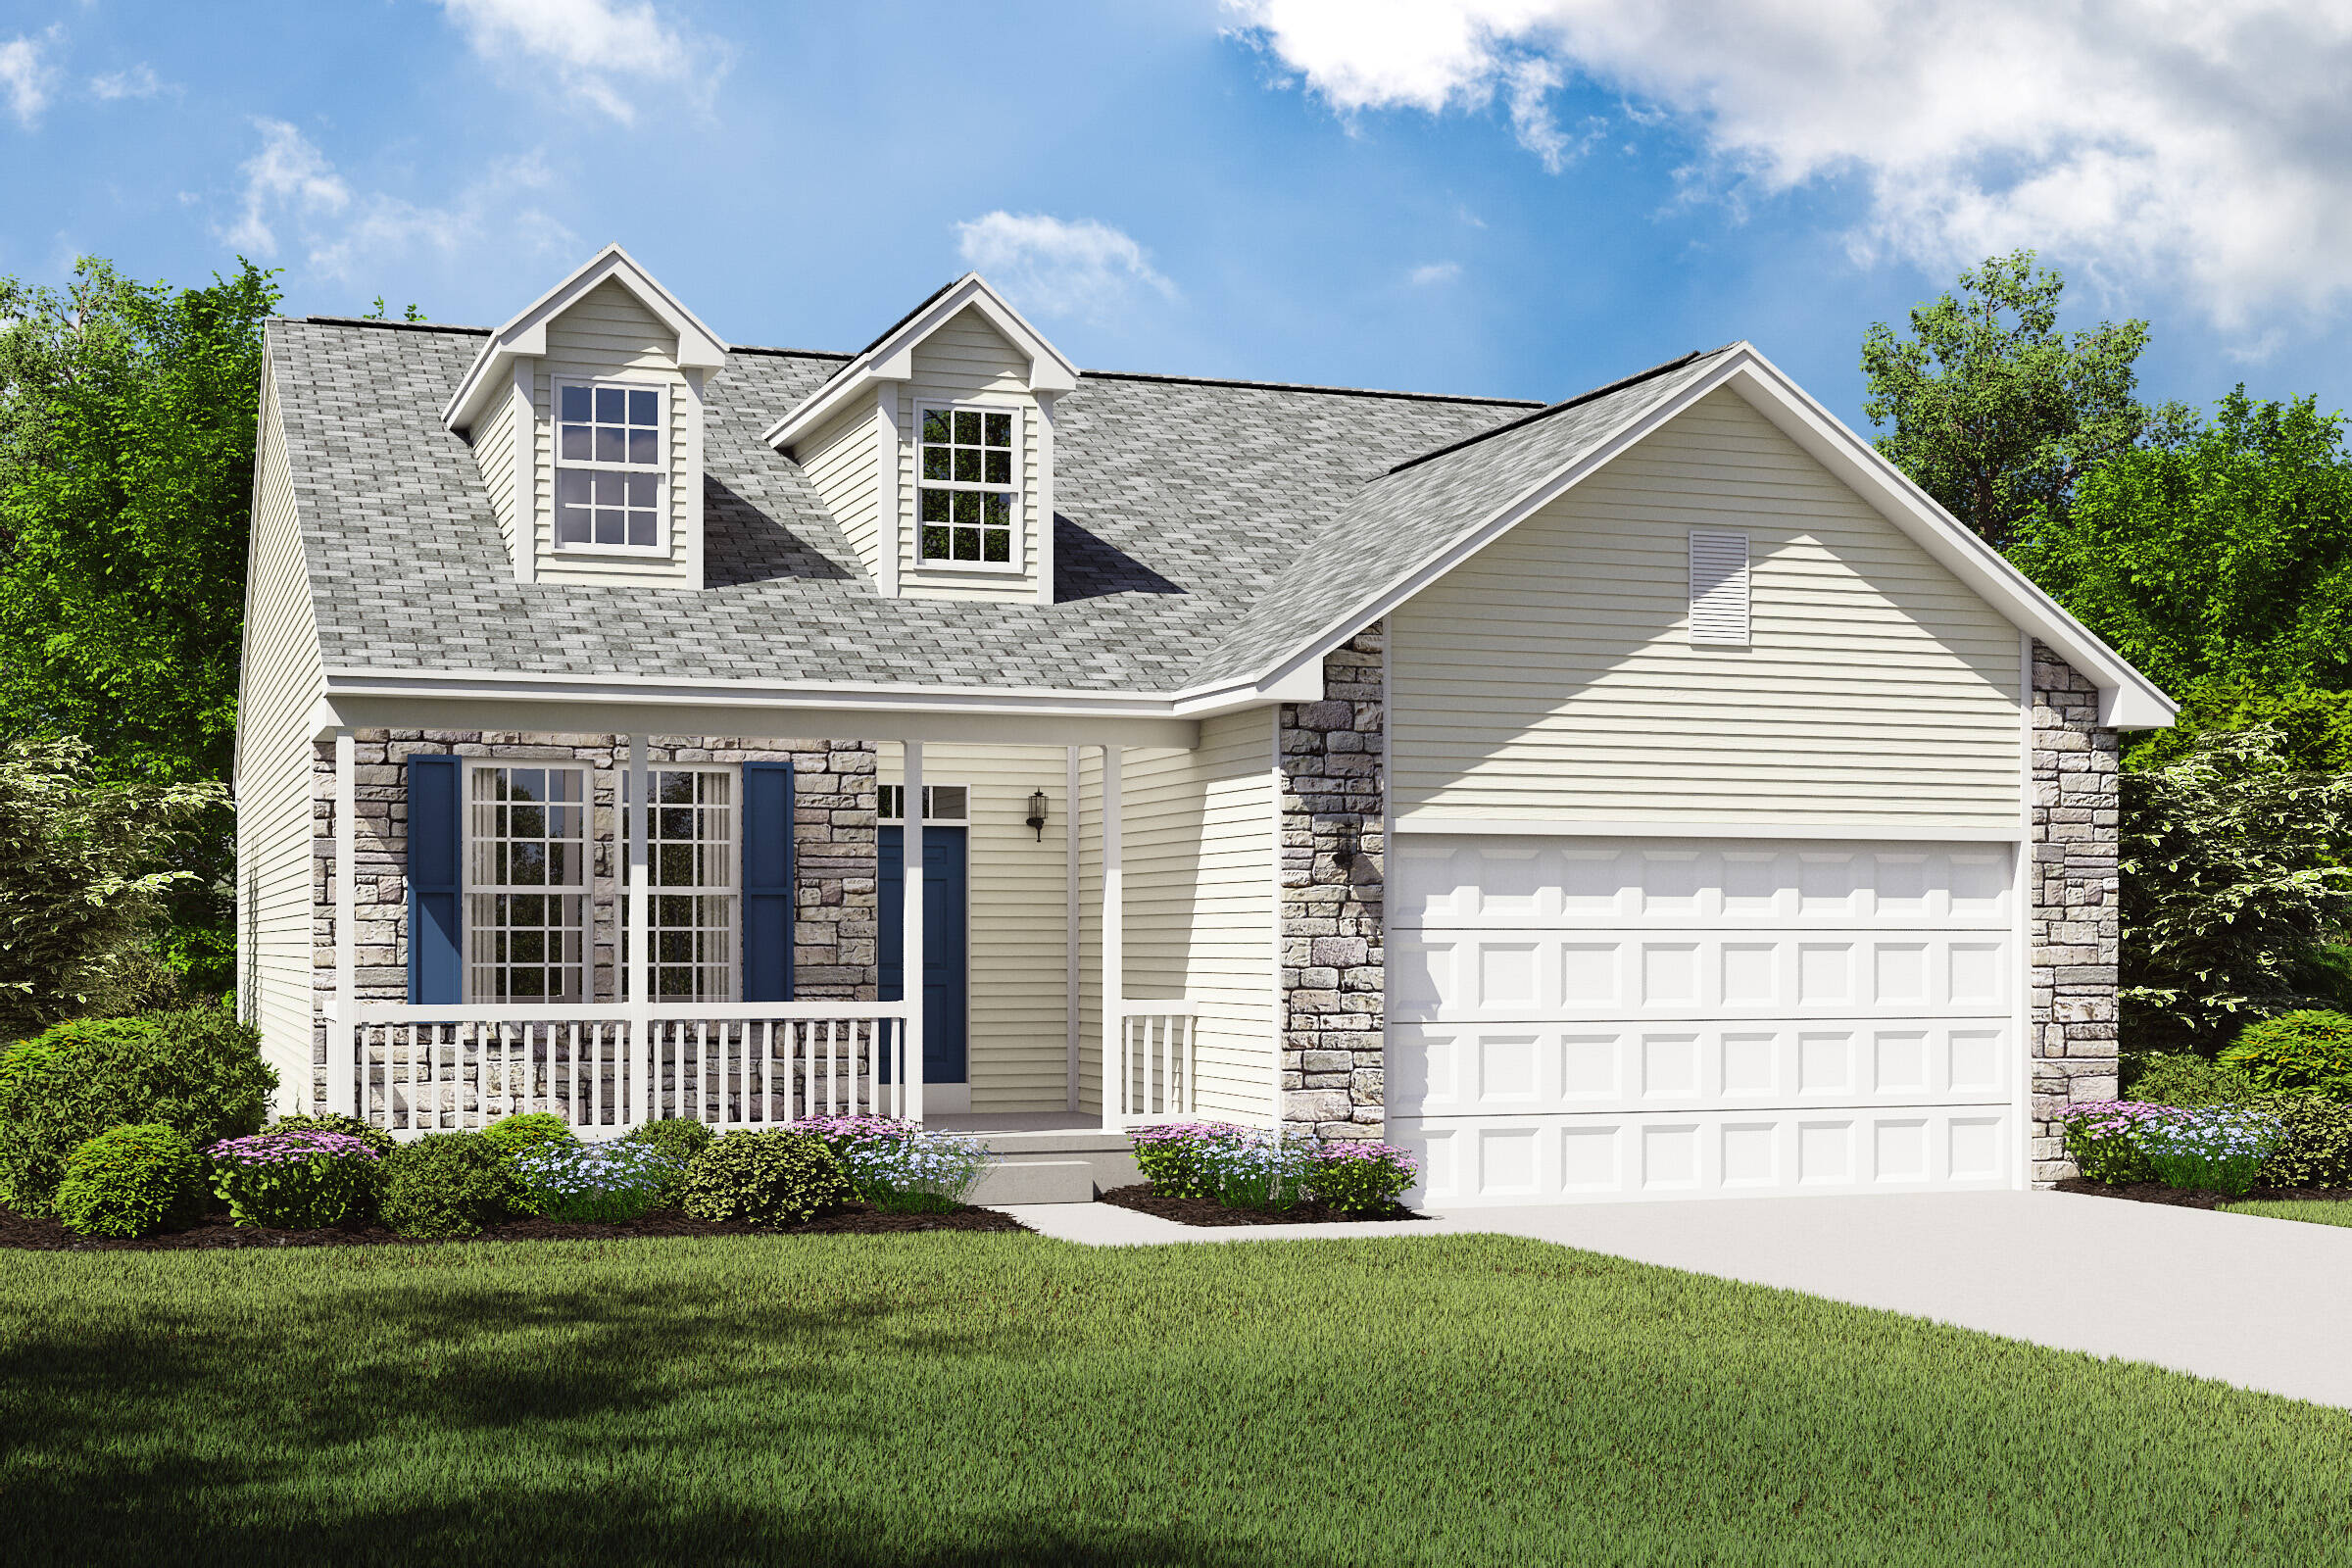 pinacle b new ranch home stone exterior cleveland ohio